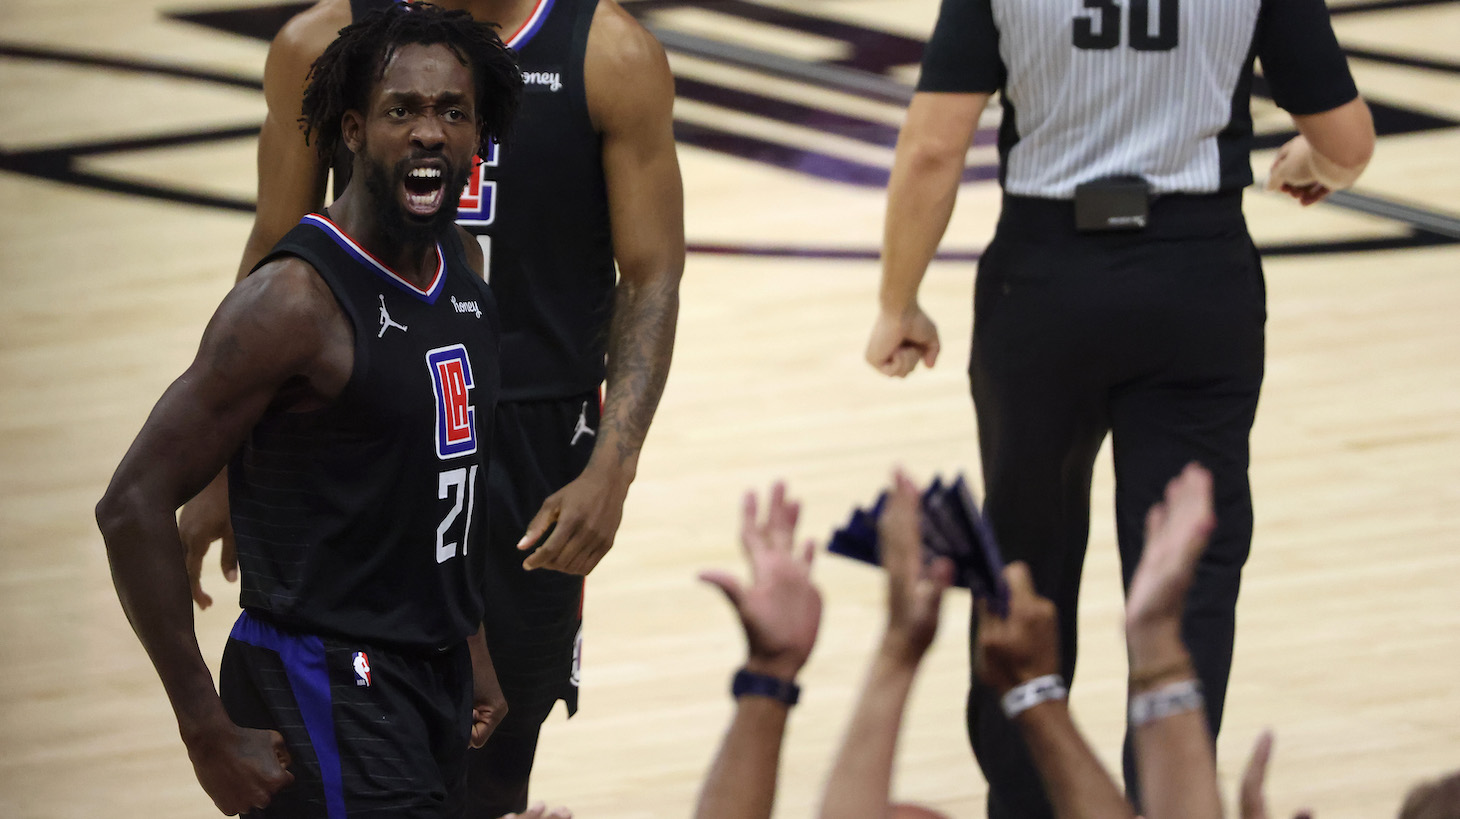 LOS ANGELES, CALIFORNIA - JUNE 30: Patrick Beverley #21 of the LA Clippers reacts to the crowd after a Phoenix Suns foul during the first half in Game Six of the Western Conference Finals at Staples Center on June 30, 2021 in Los Angeles, California. NOTE TO USER: User expressly acknowledges and agrees that, by downloading and or using this photograph, User is consenting to the terms and conditions of the Getty Images License Agreement. (Photo by Harry How/Getty Images)